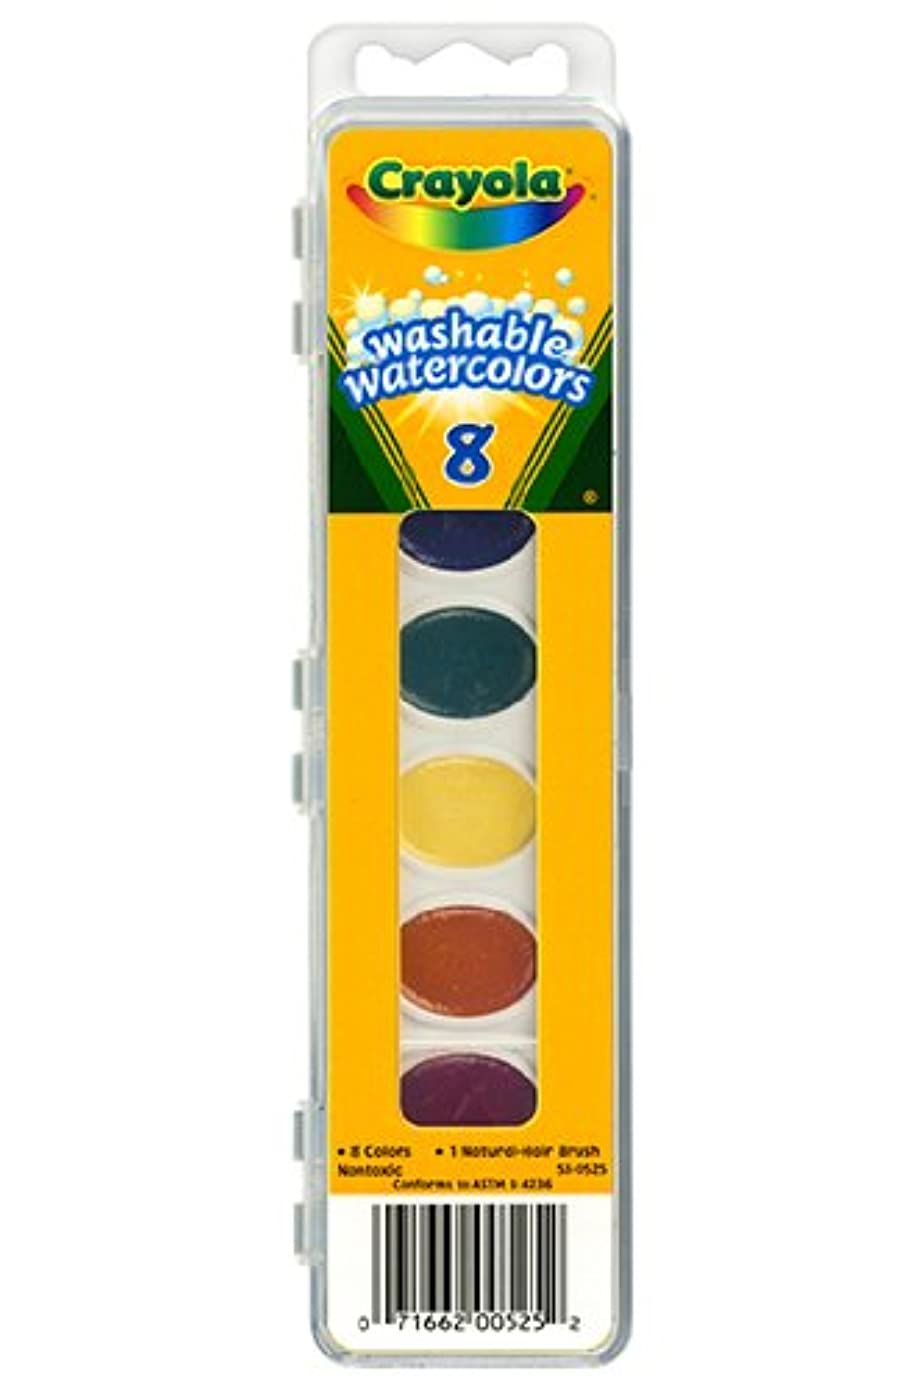 Crayola Watercolor Paints Washable 8 Primary Colors ( Pack of 6 )